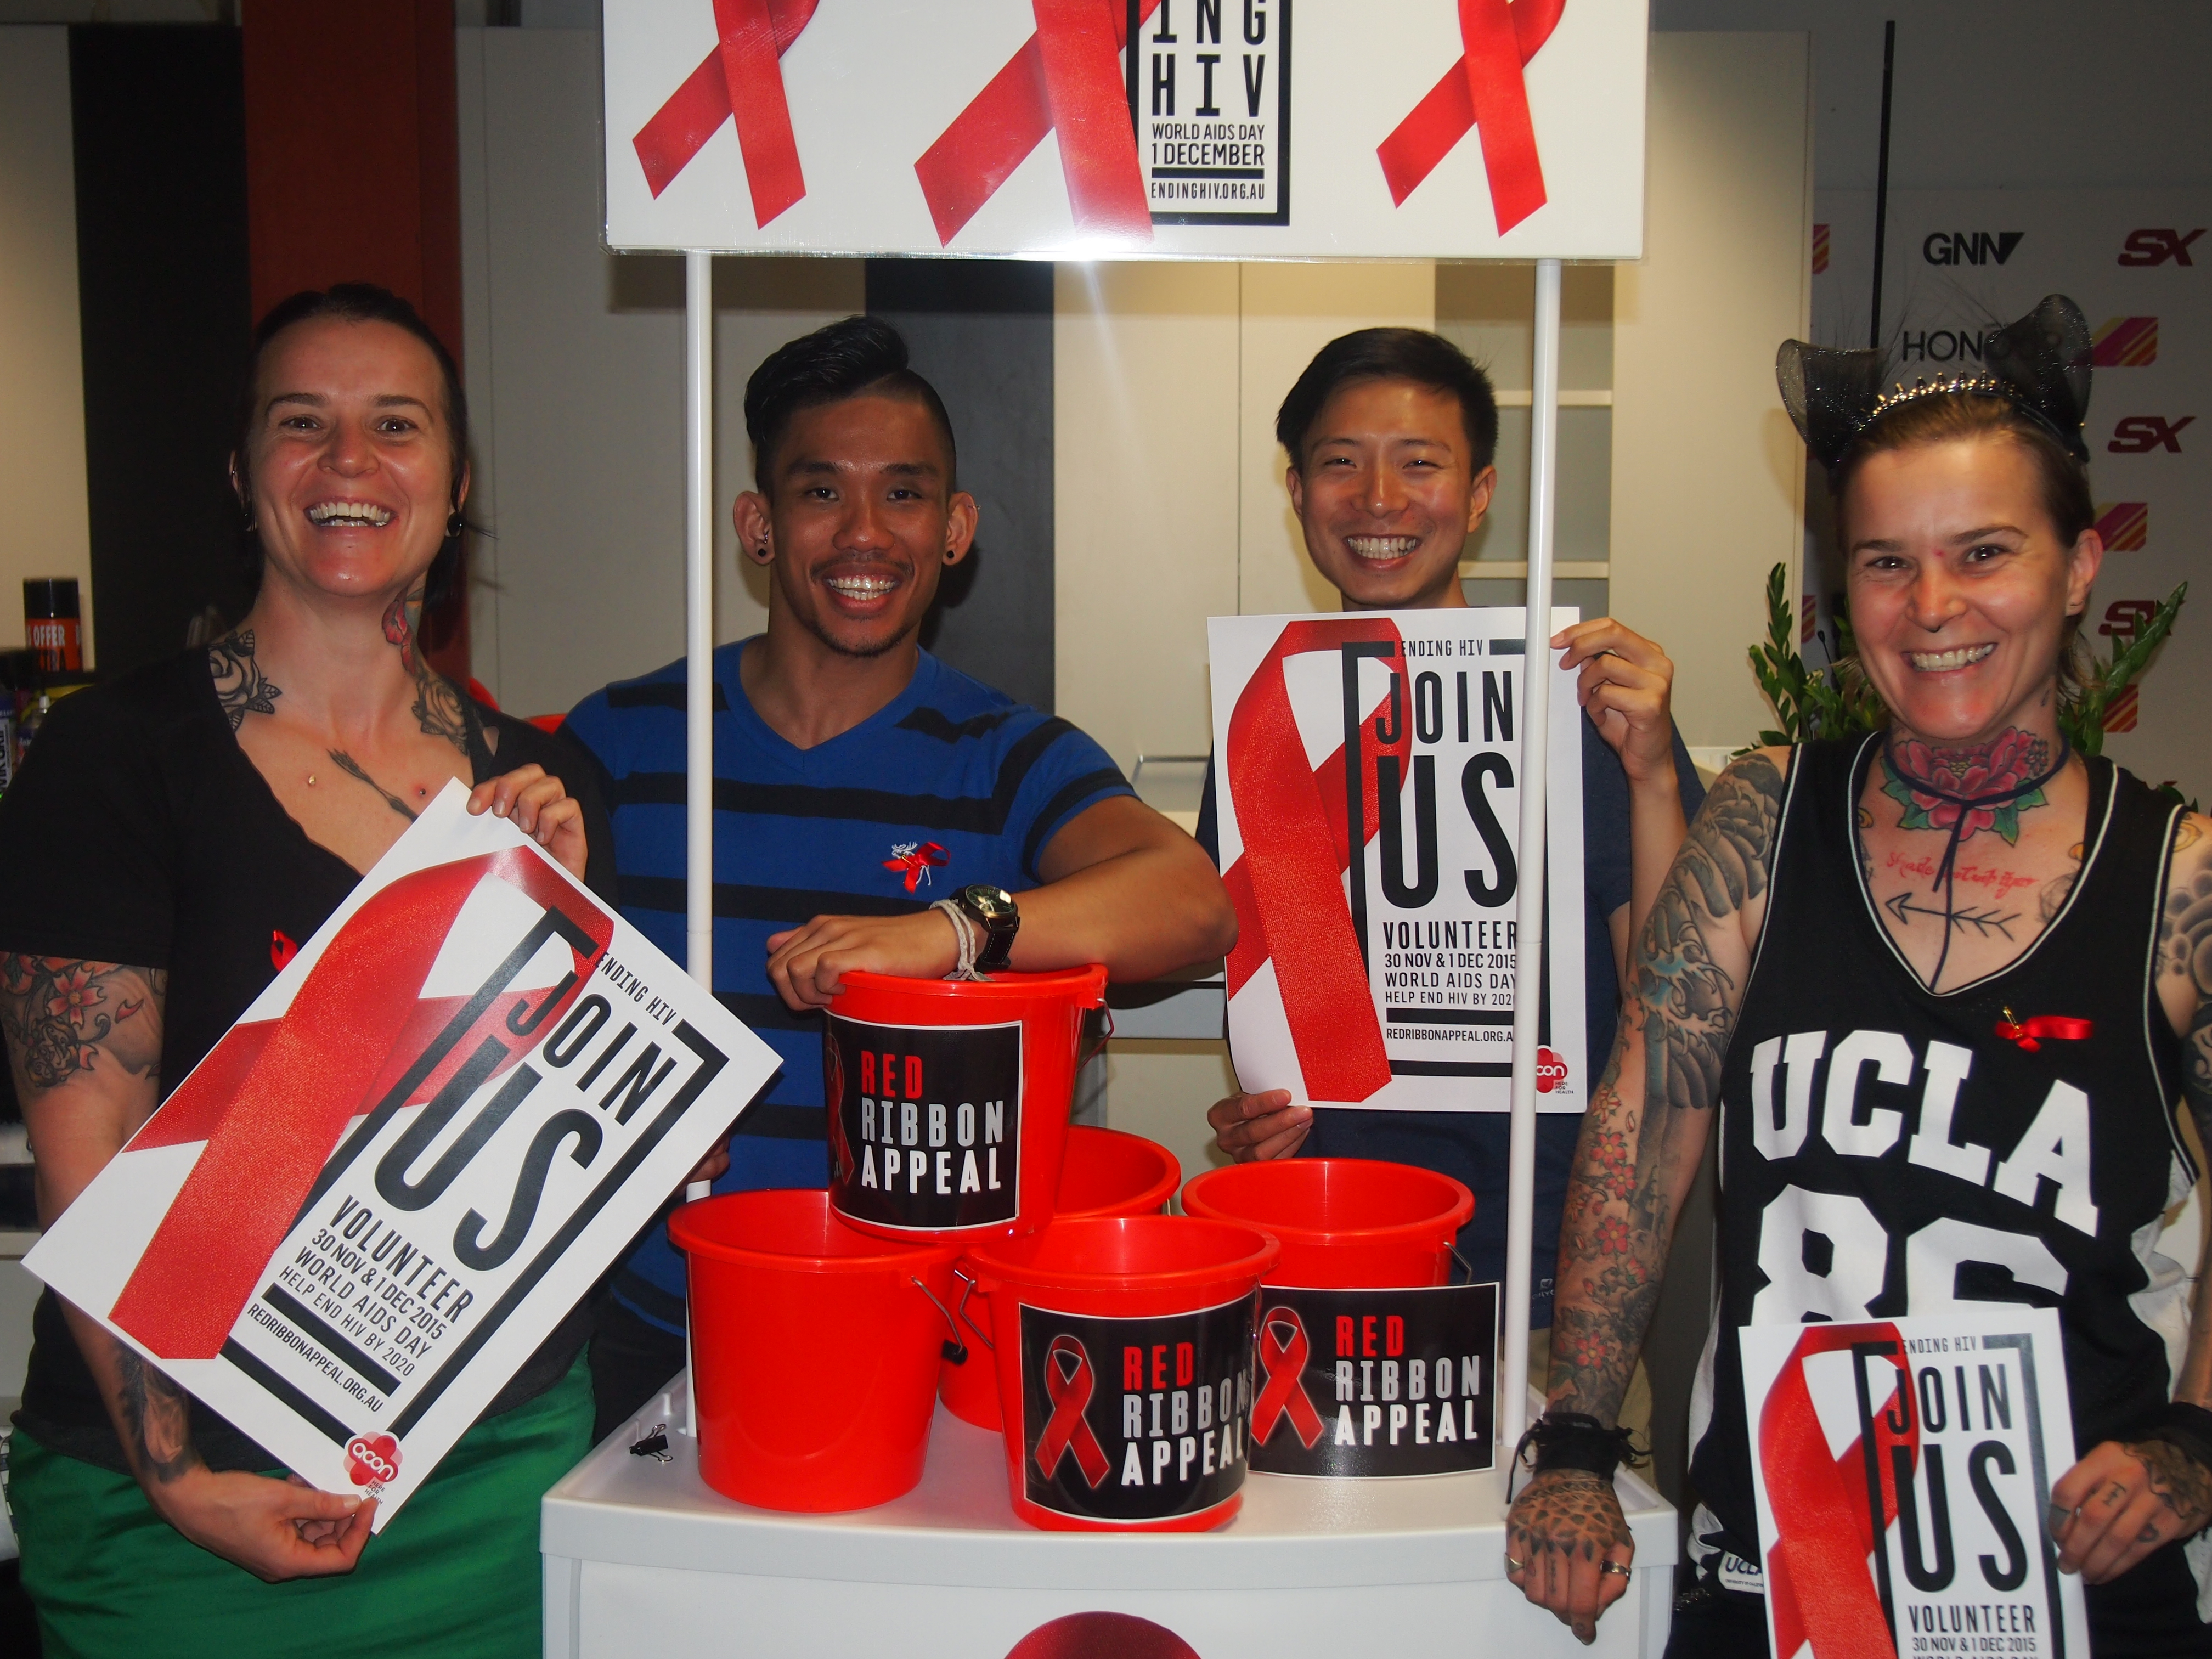 Charlie Sheen brings community together at World AIDS Day